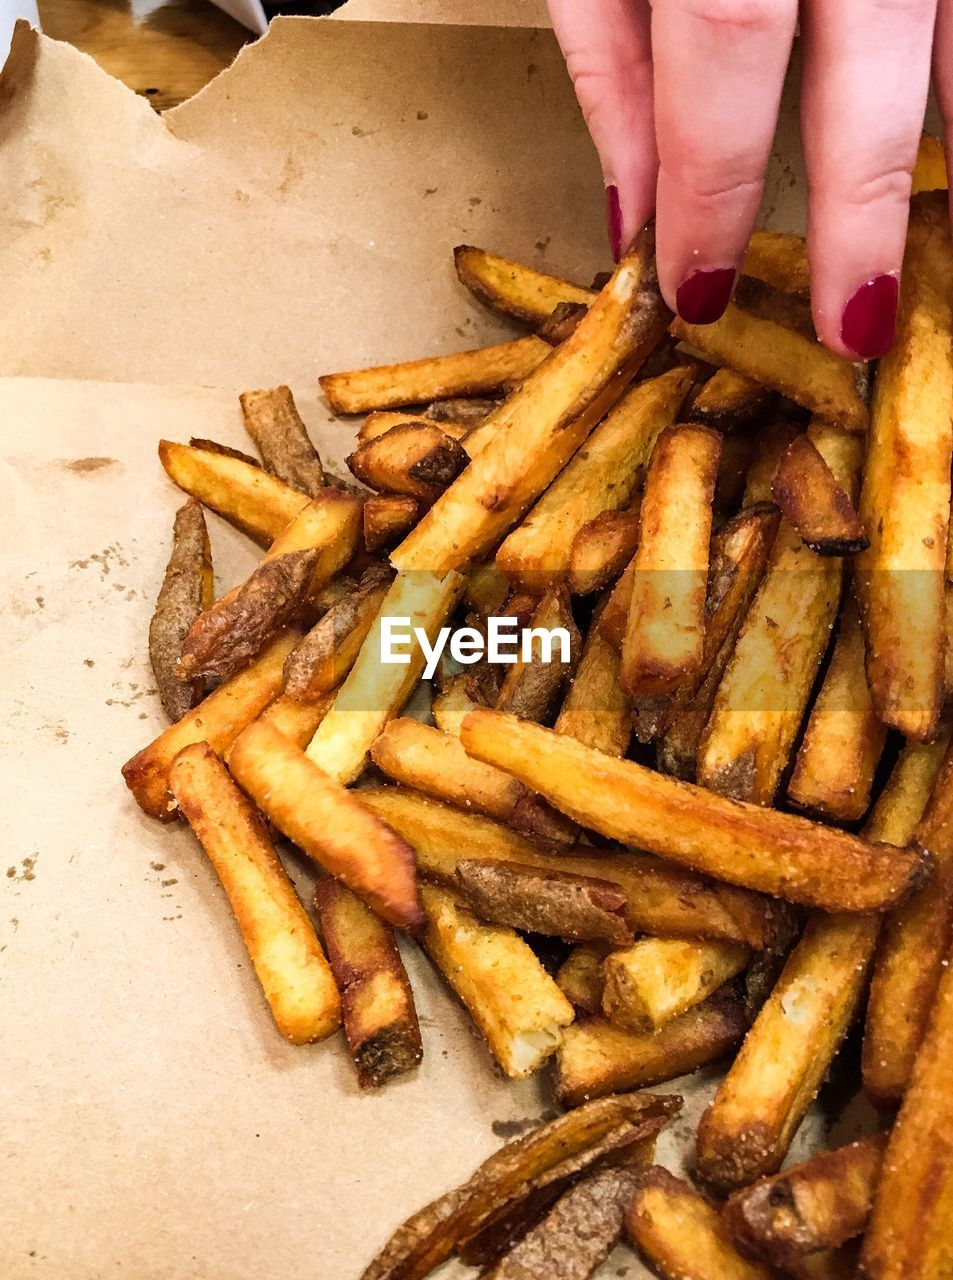 hand, human hand, food, french fries, fast food, food and drink, human body part, potato, unhealthy eating, one person, prepared potato, ready-to-eat, freshness, fried, deep fried, real people, indoors, unrecognizable person, snack, body part, finger, temptation, fast food french fries